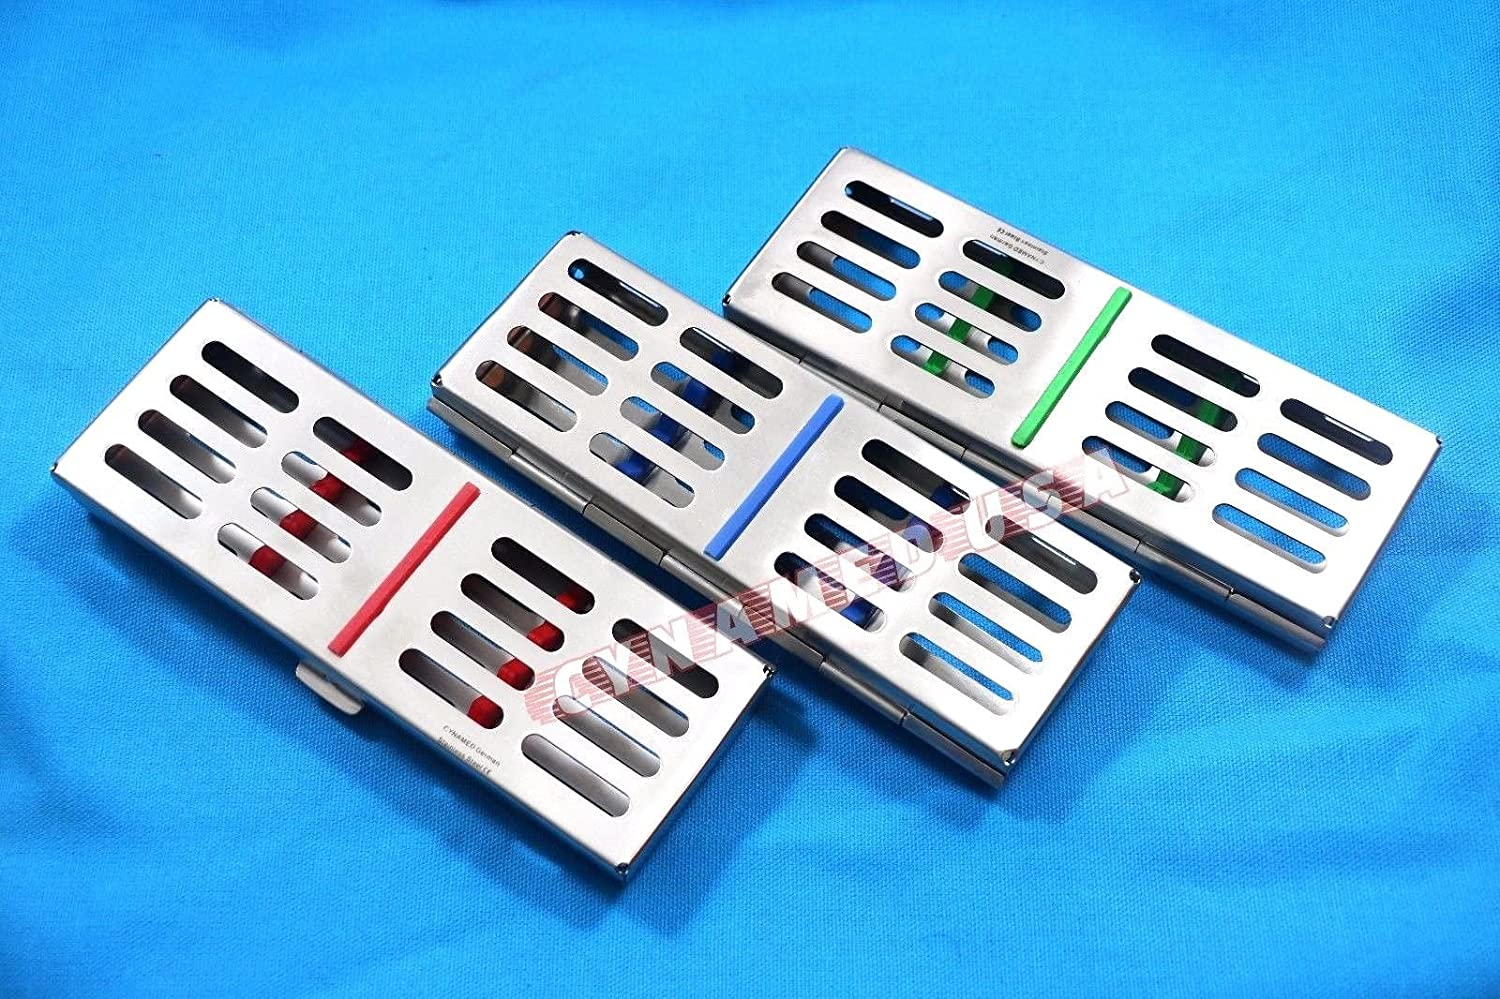 New Set of 3 German Stainless Dental Autoclave Sterilization Cassette Rack Box Tray for 5 Instruments Set of 3 Colored